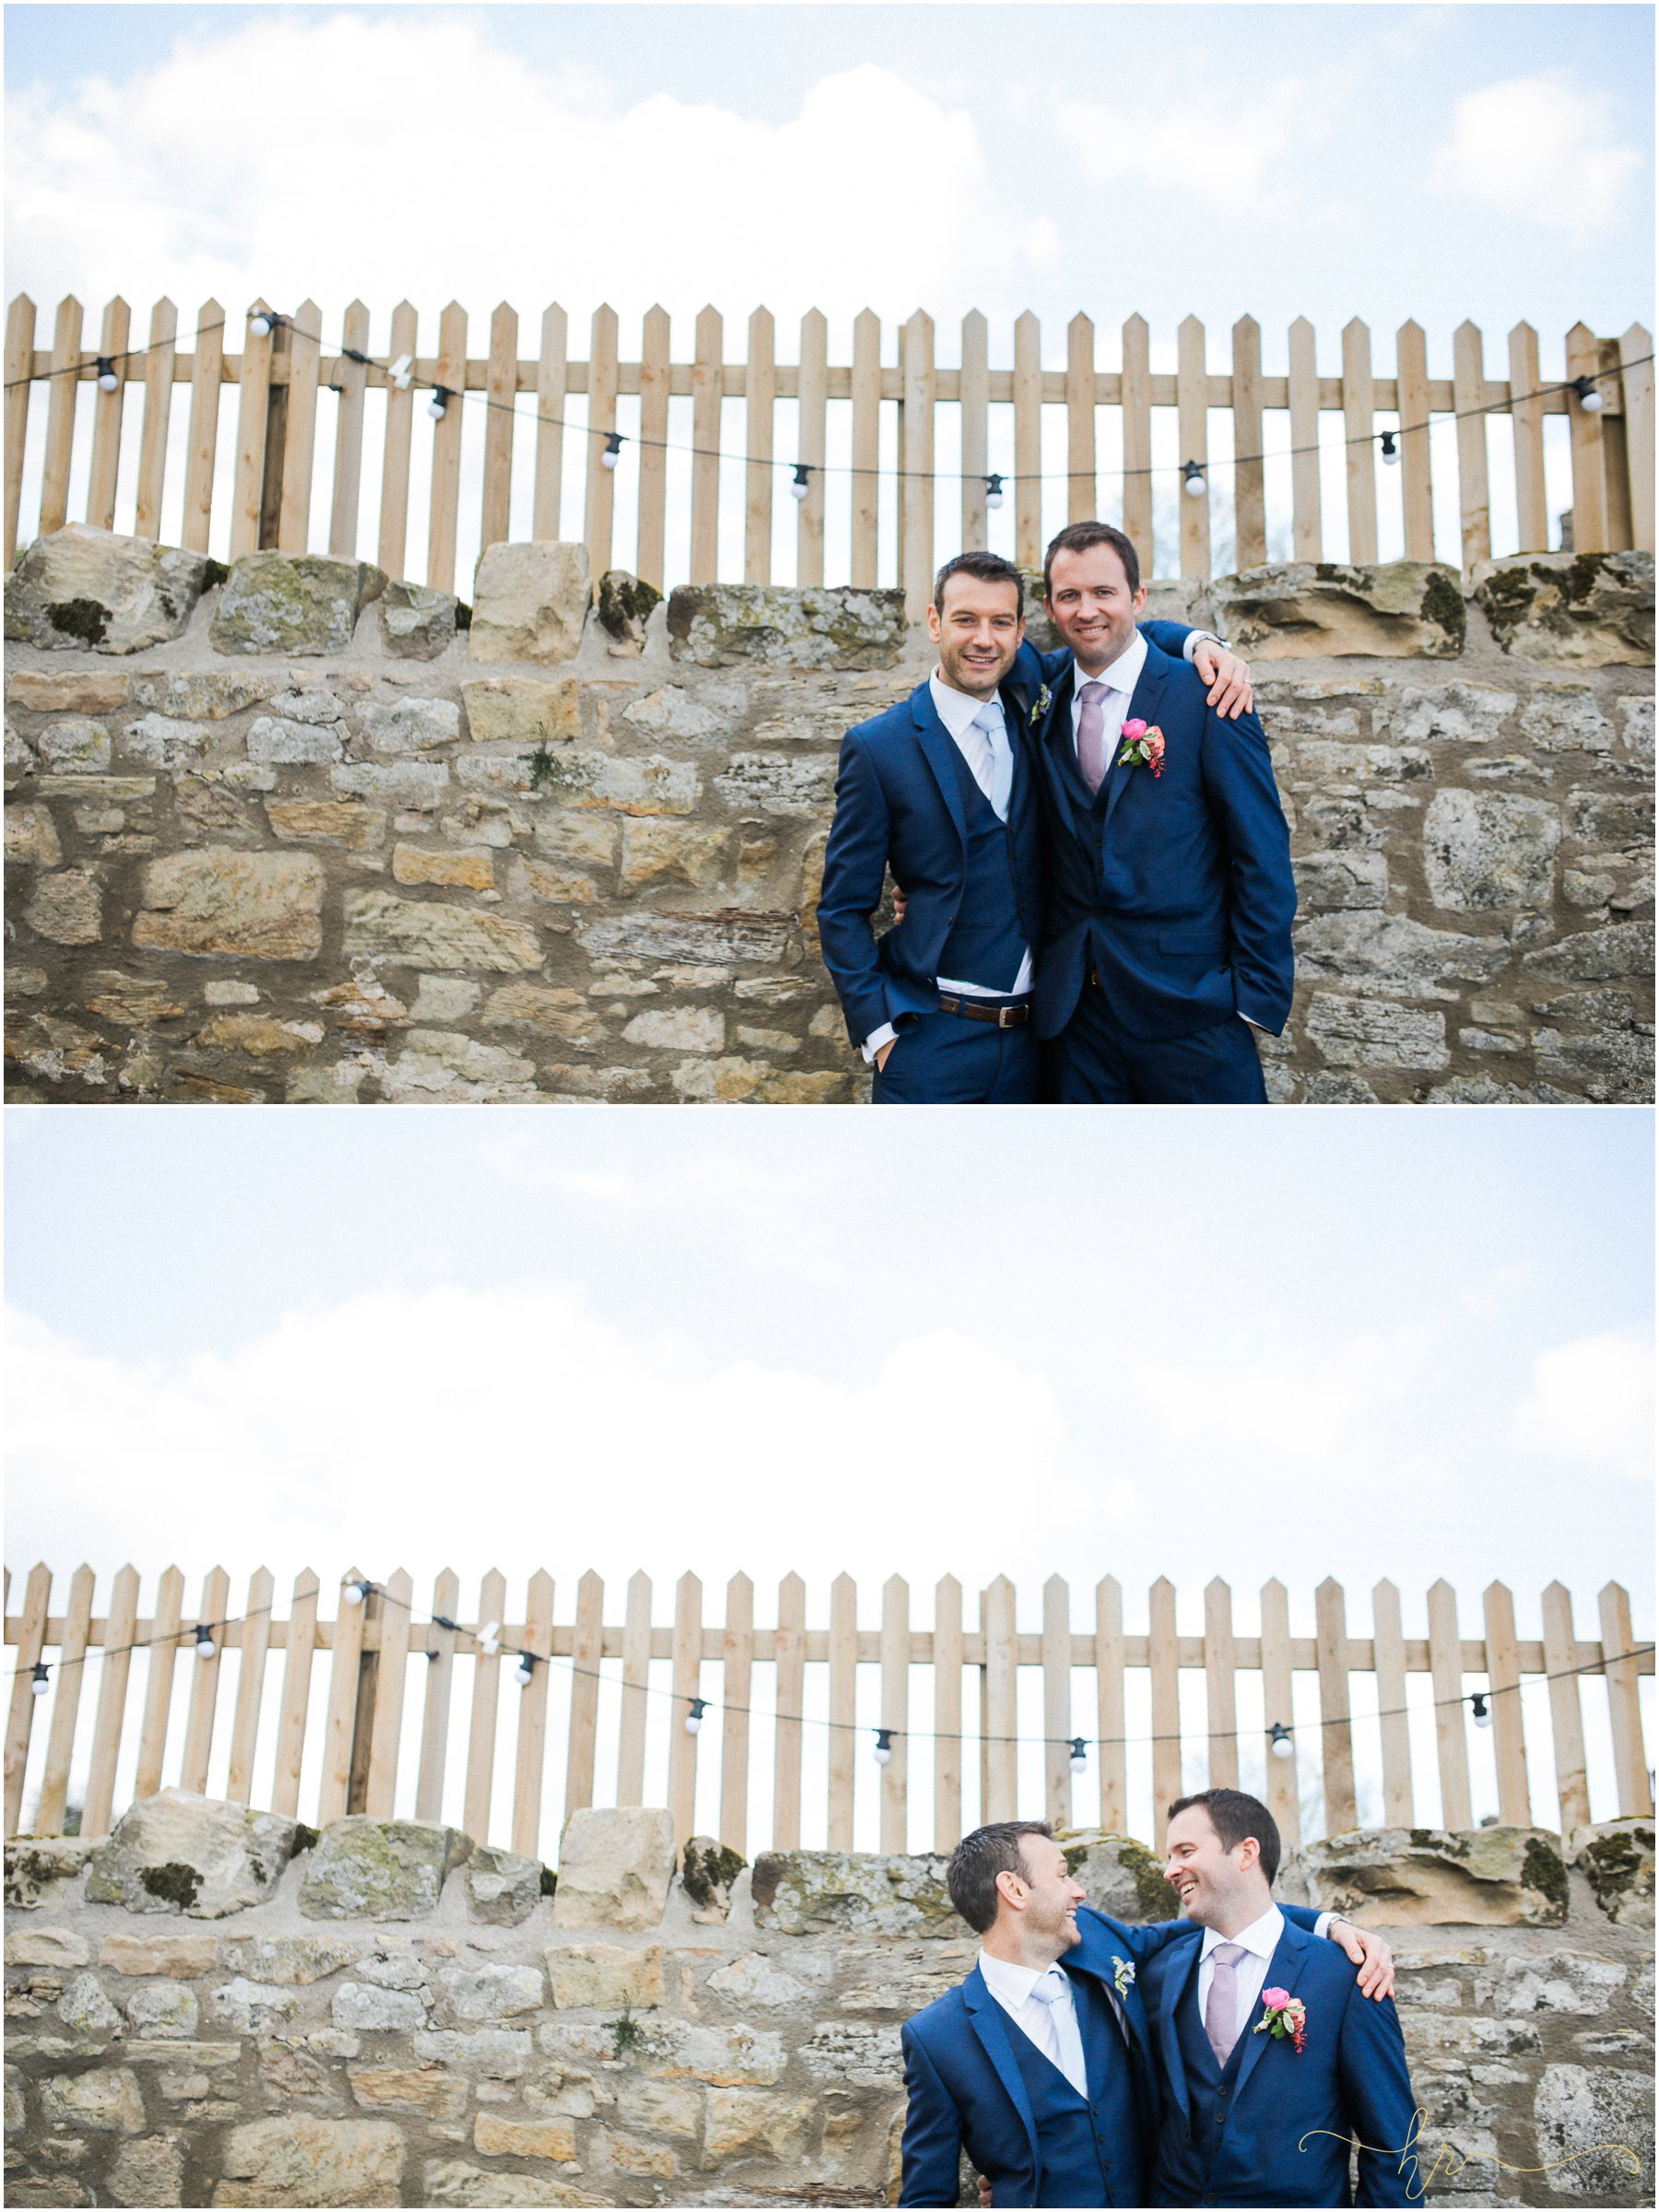 Doxford-Barn-Wedding-Photography_0221